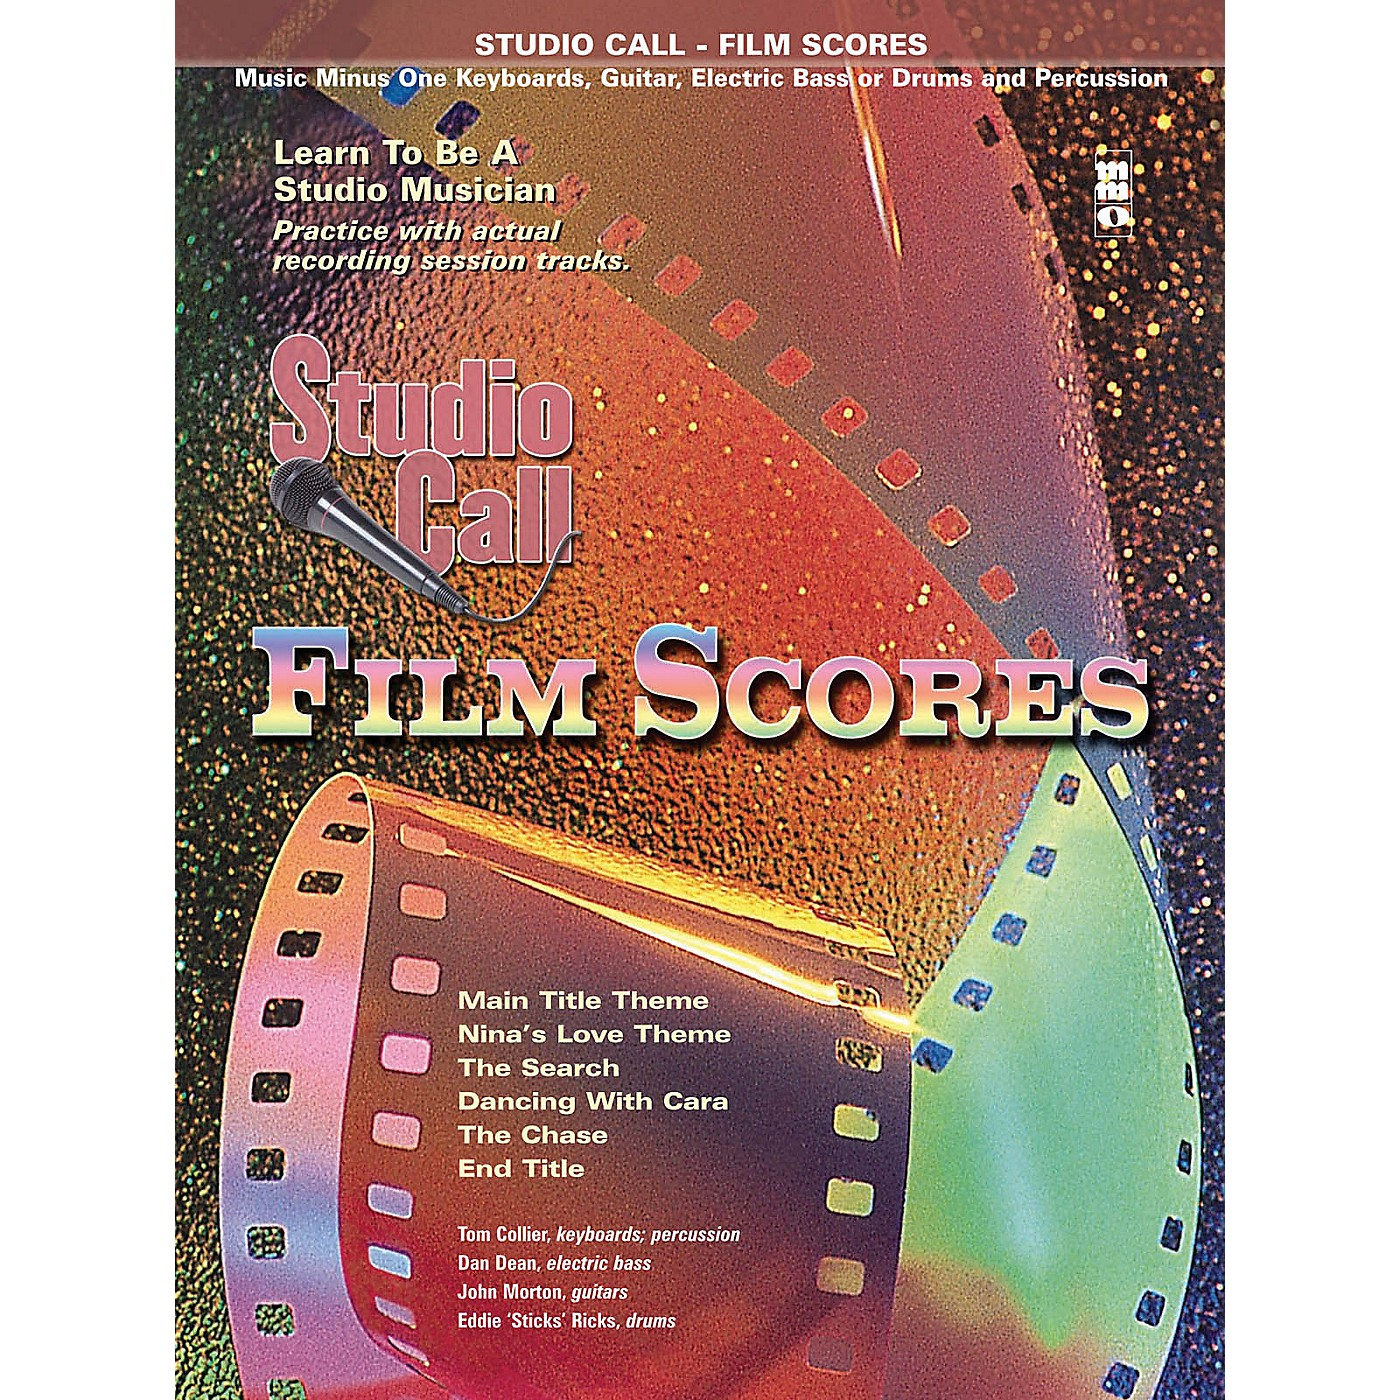 Music Minus One Studio Call: Film Scores - Drums (Learn to Be a Studio Musician) Music Minus One Series Softcover with CD thumbnail